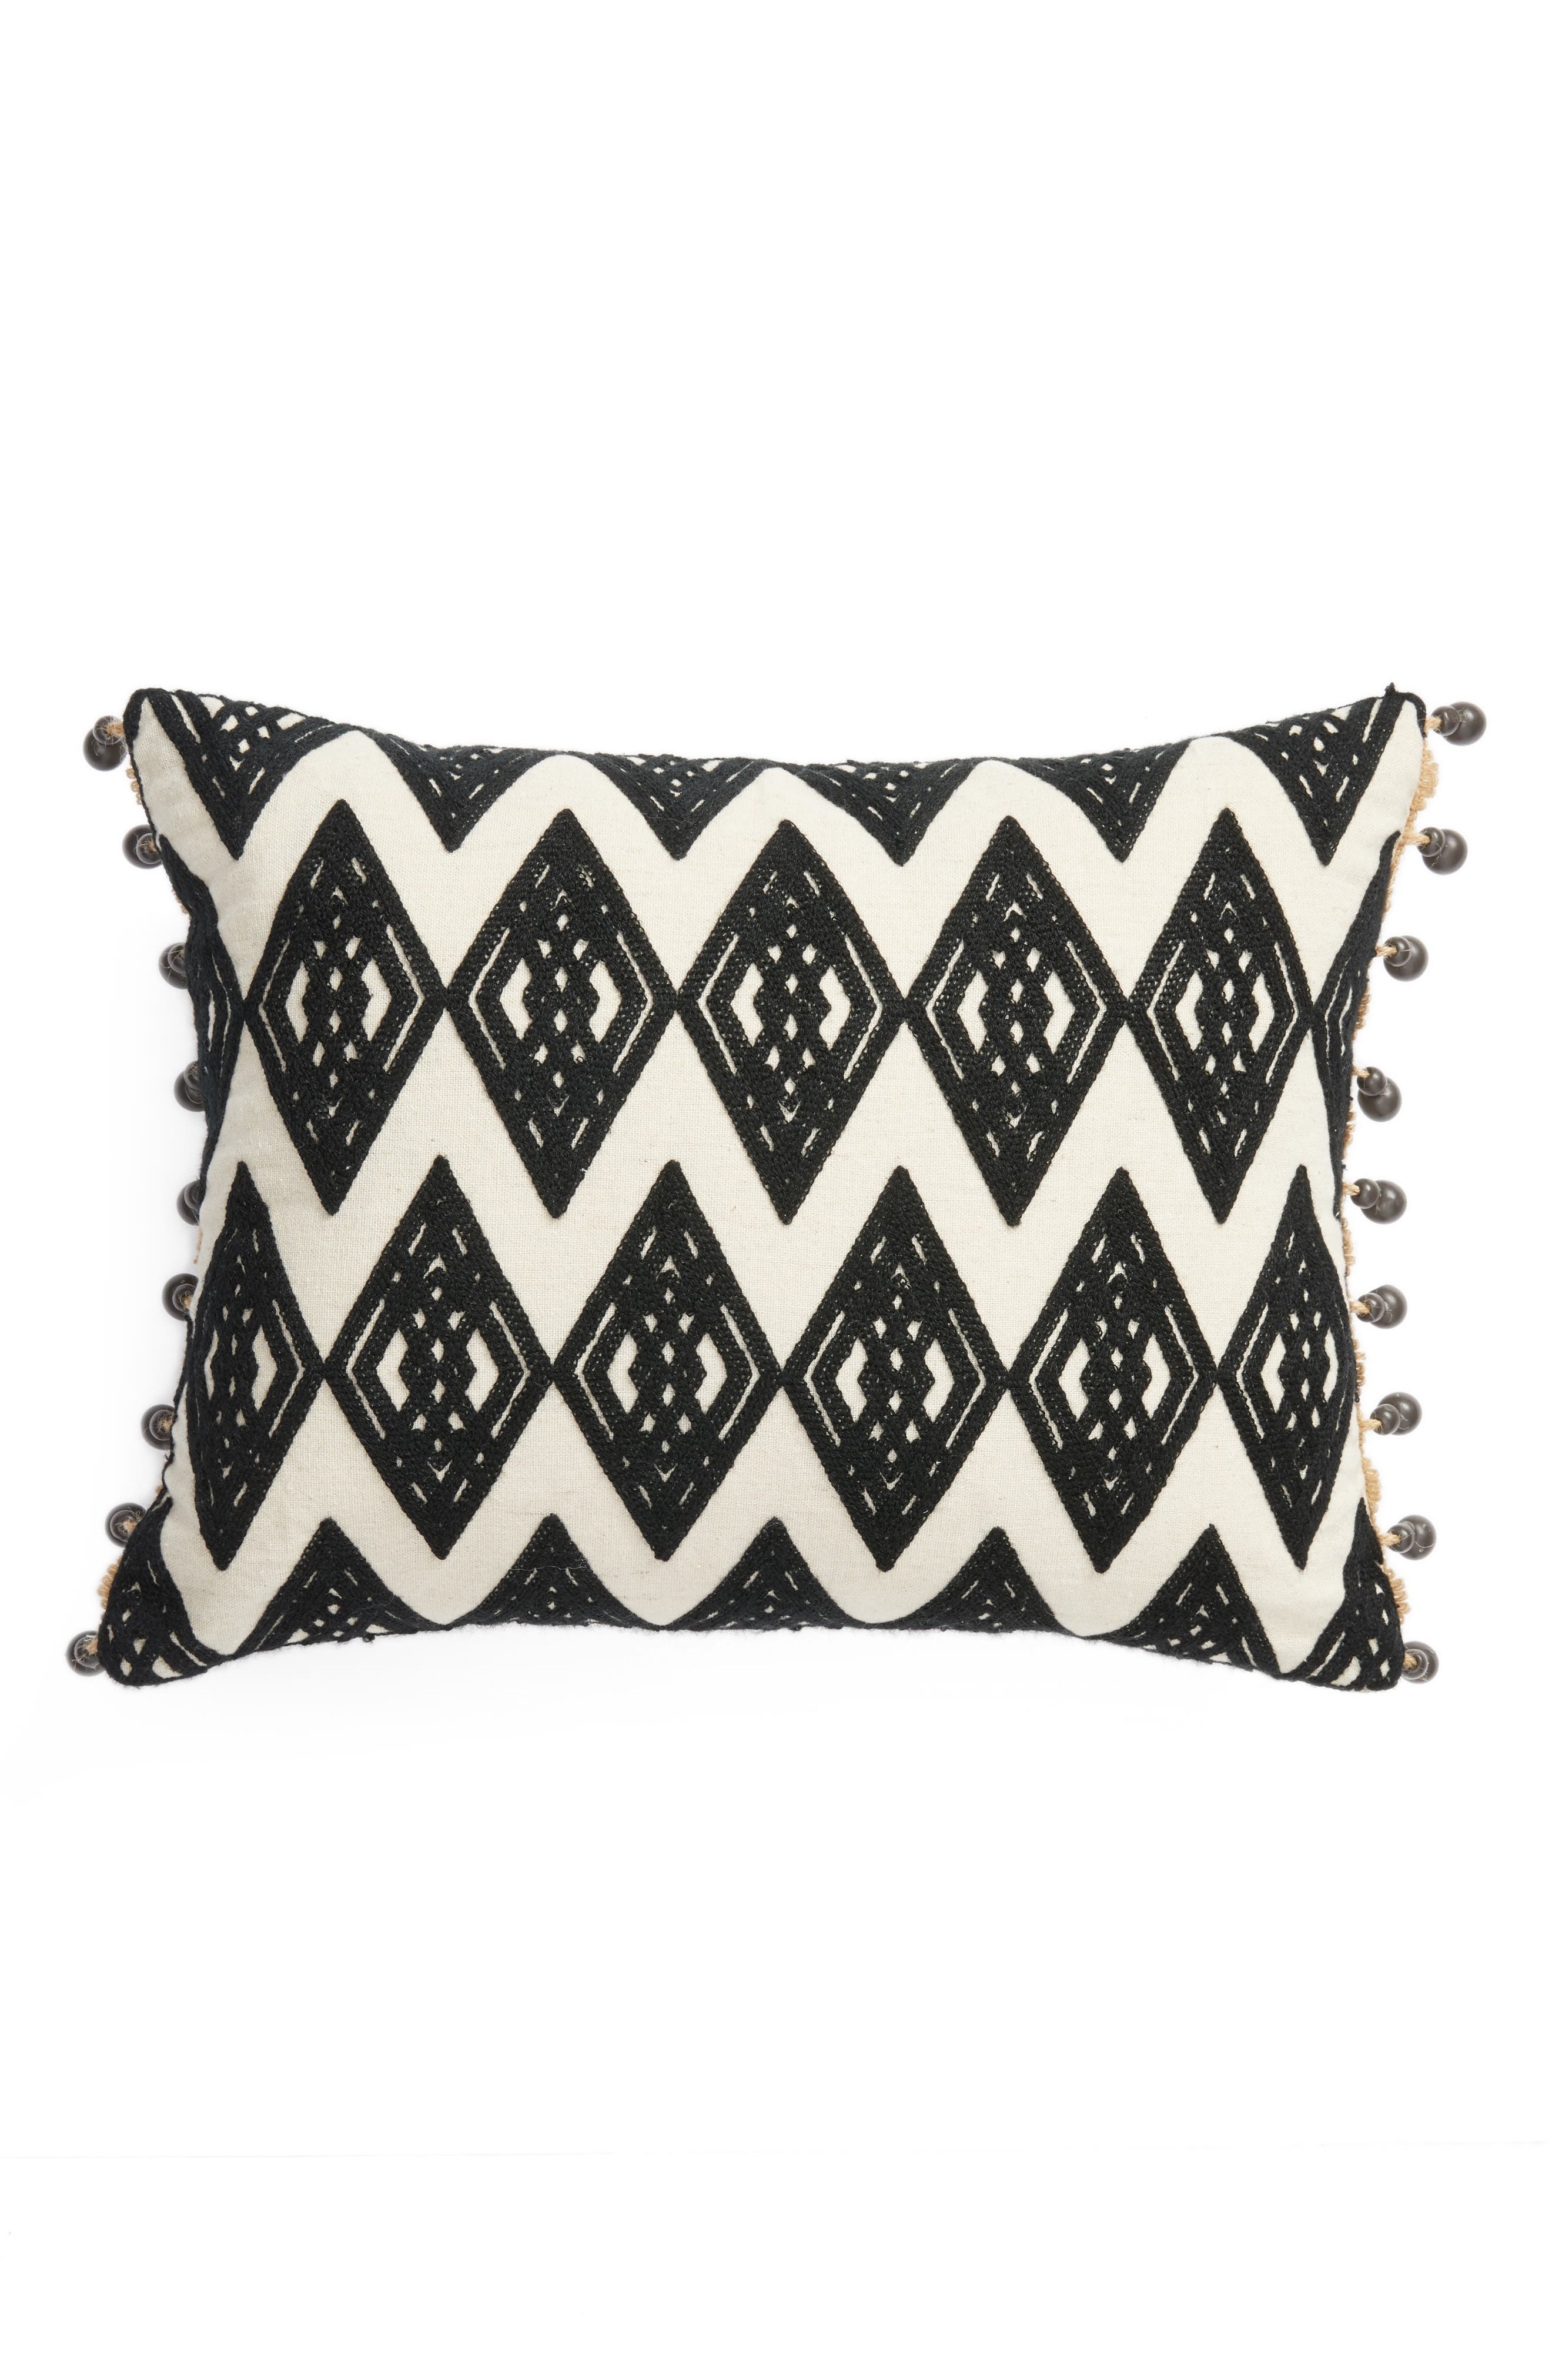 Main Image - Levtex Moroccan Crewel Embroidered Pillow